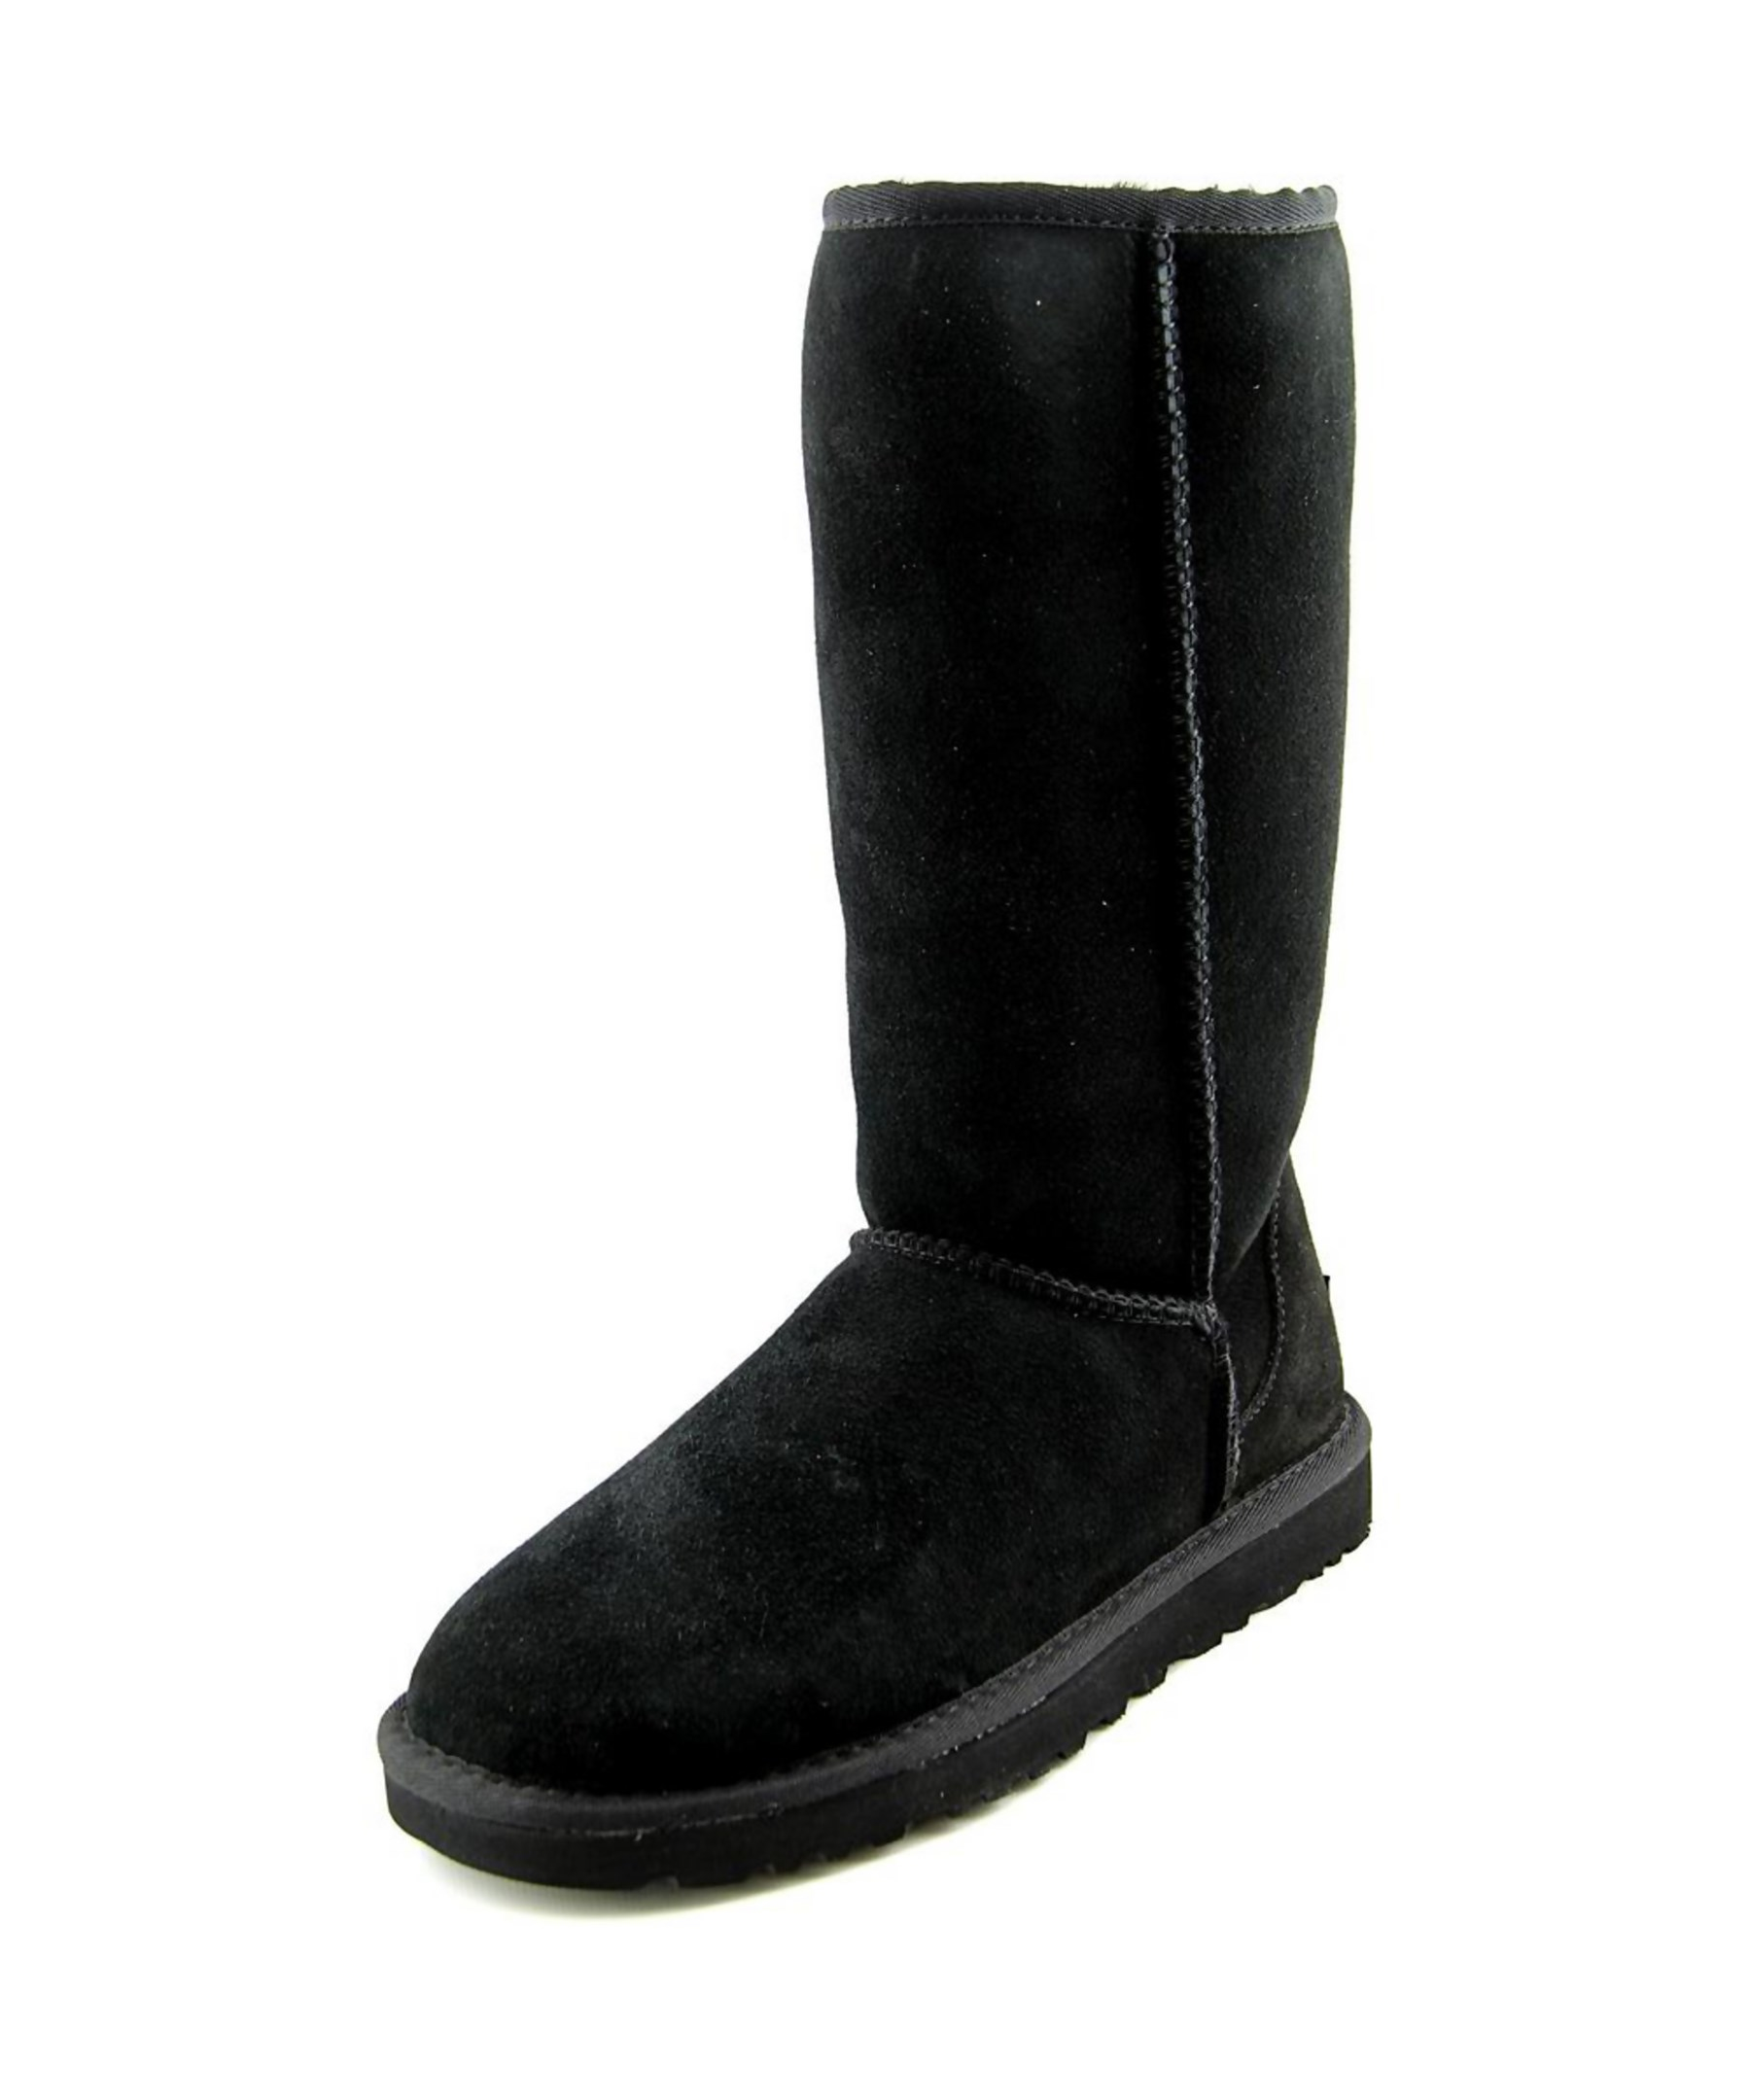 a9f4061bf24 Womens Classic Tall Ugg Boots Black - cheap watches mgc-gas.com